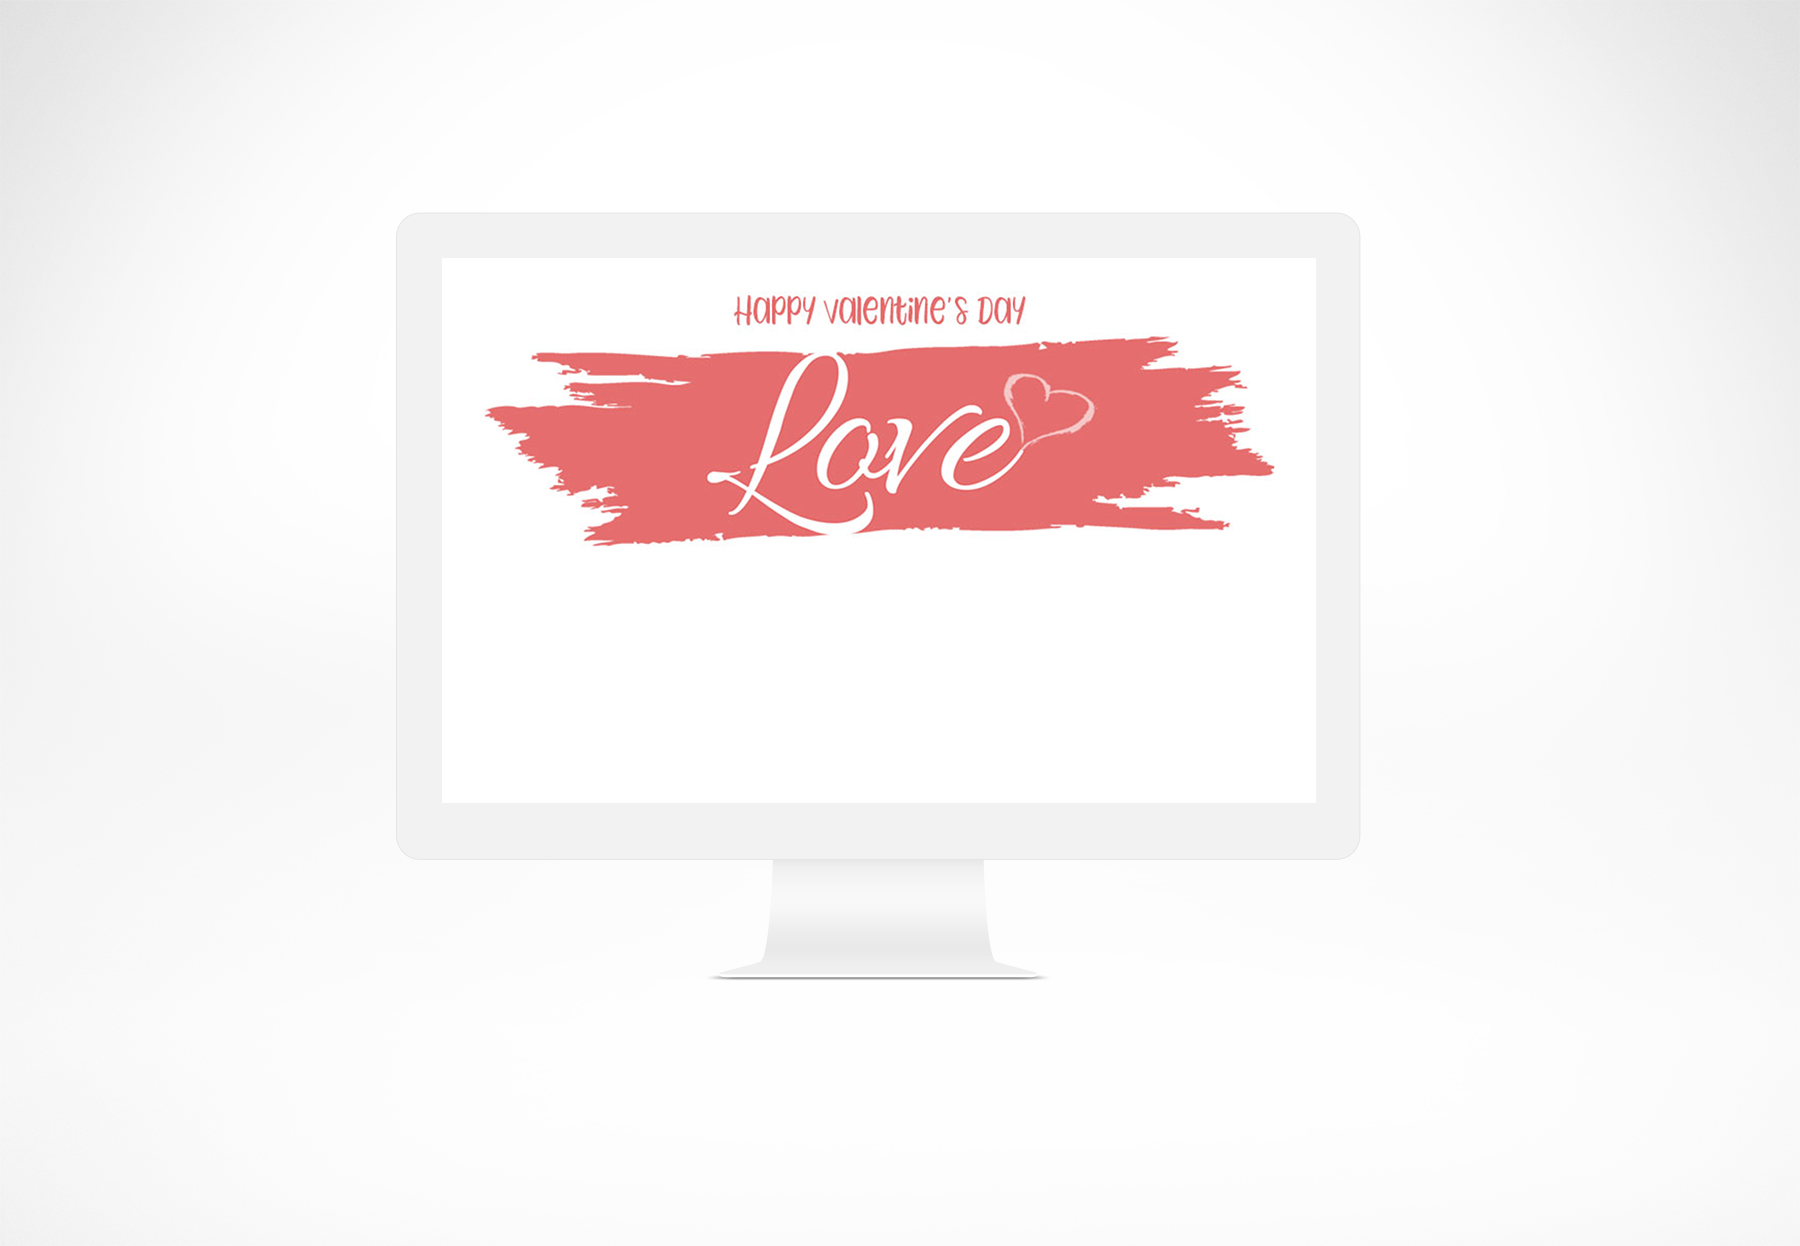 Valentine's Day Facebook Banner example image 2